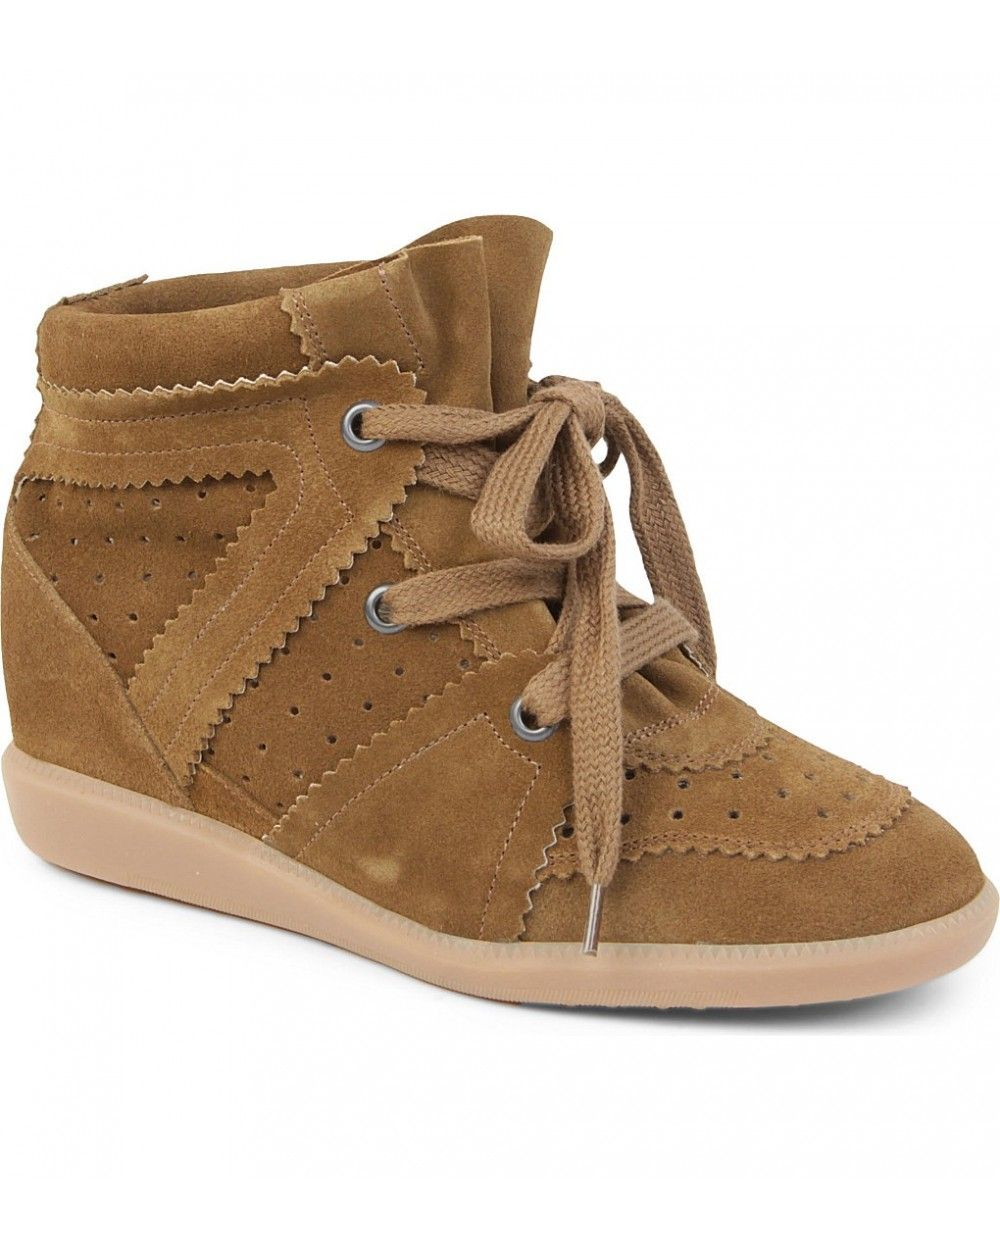 c2cd166a7a65 Isabel Marant Bobby Suede Wedge Trainers Camel - Isabel Marant  isabelmarant   shoes  sneakers  women  womenfashion  newyear  fashion  gifts